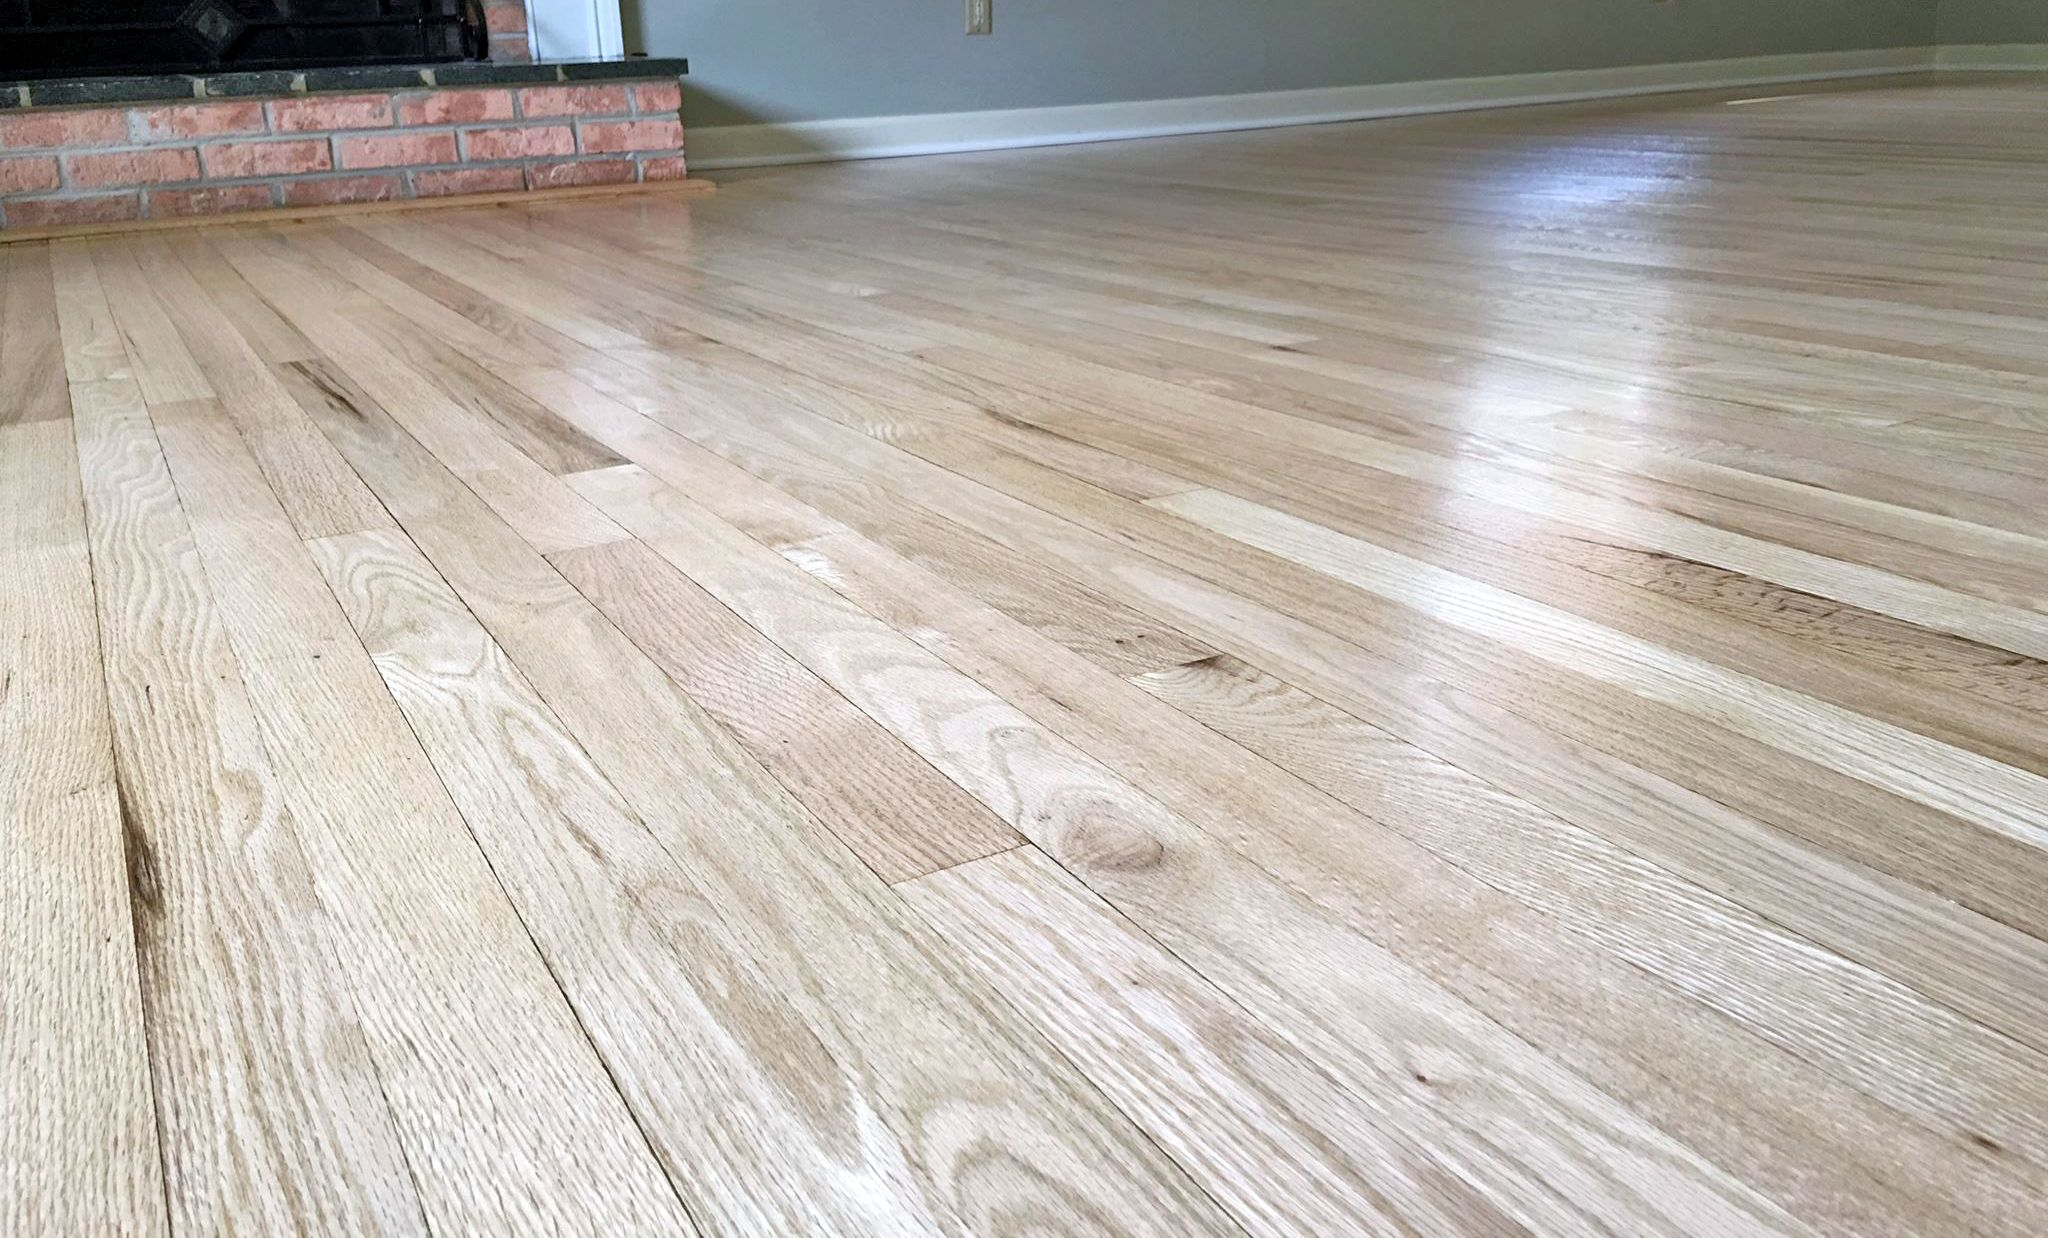 Red Oak Floors Refinished With Pro Image Satin Red Oak Hardwood Floors Red Oak Floors Red Oak Wood Floors